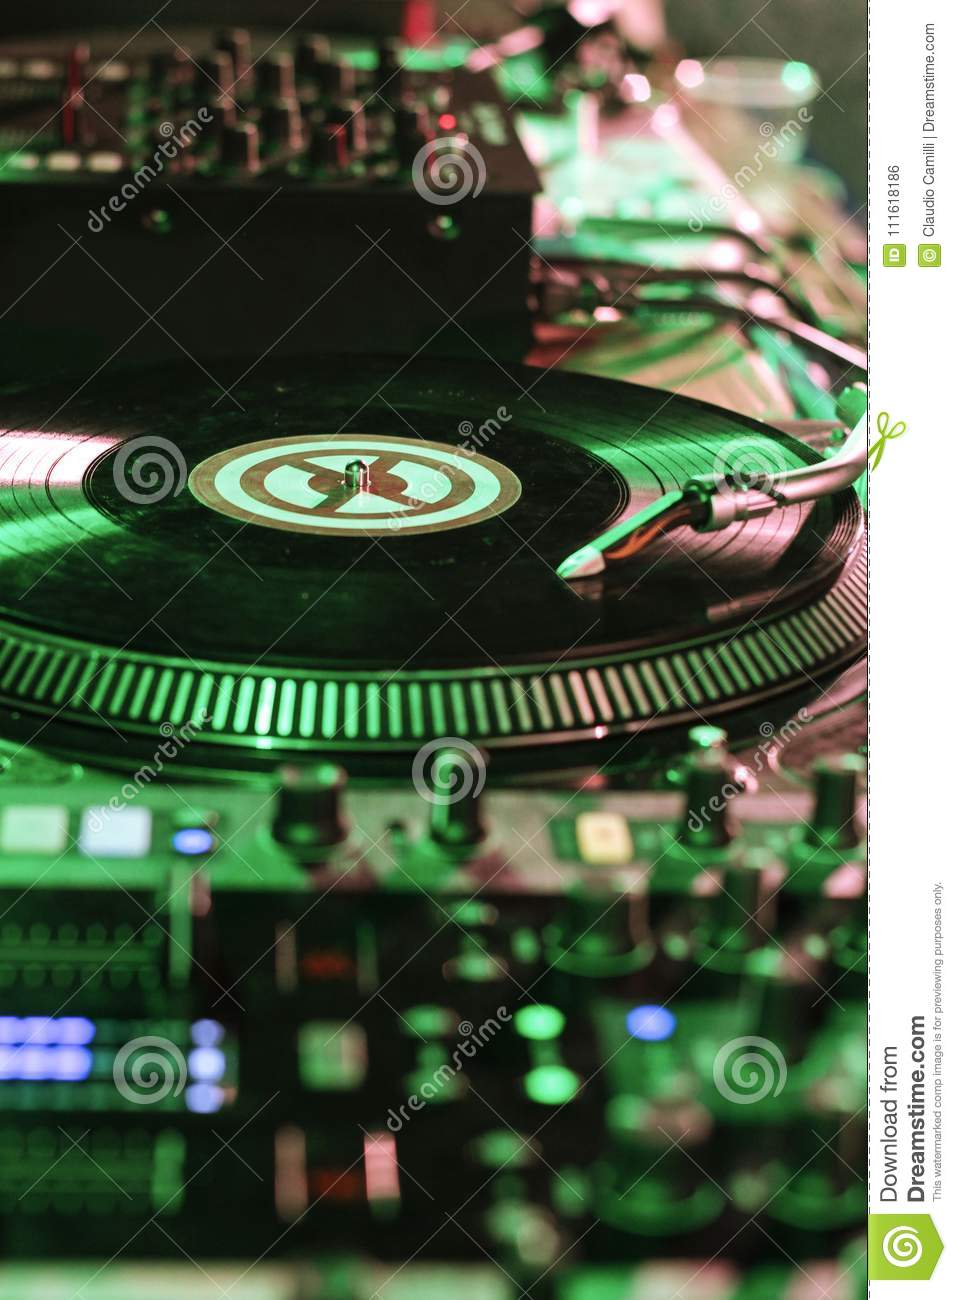 Dj scratch mixer for android apk download.